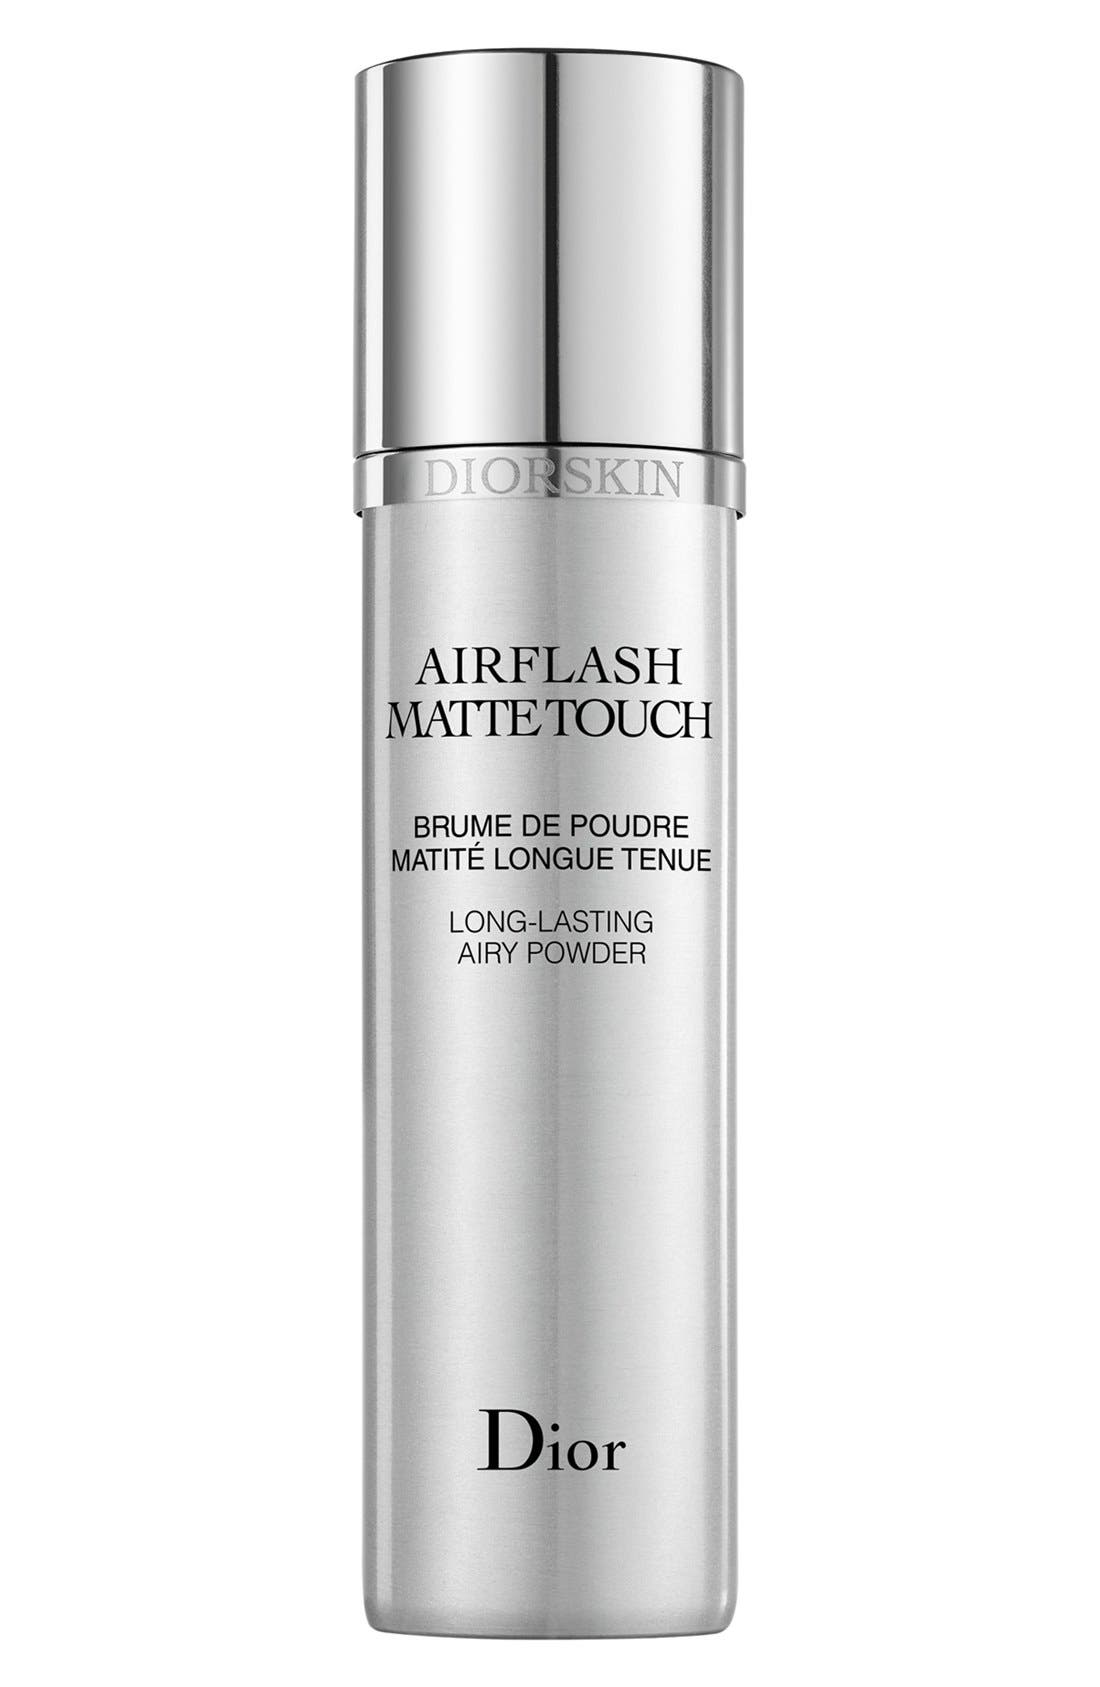 'Airflash - Matte Touch' Long-Lasting Airy Powder Finishing Spray,                             Main thumbnail 1, color,                             000